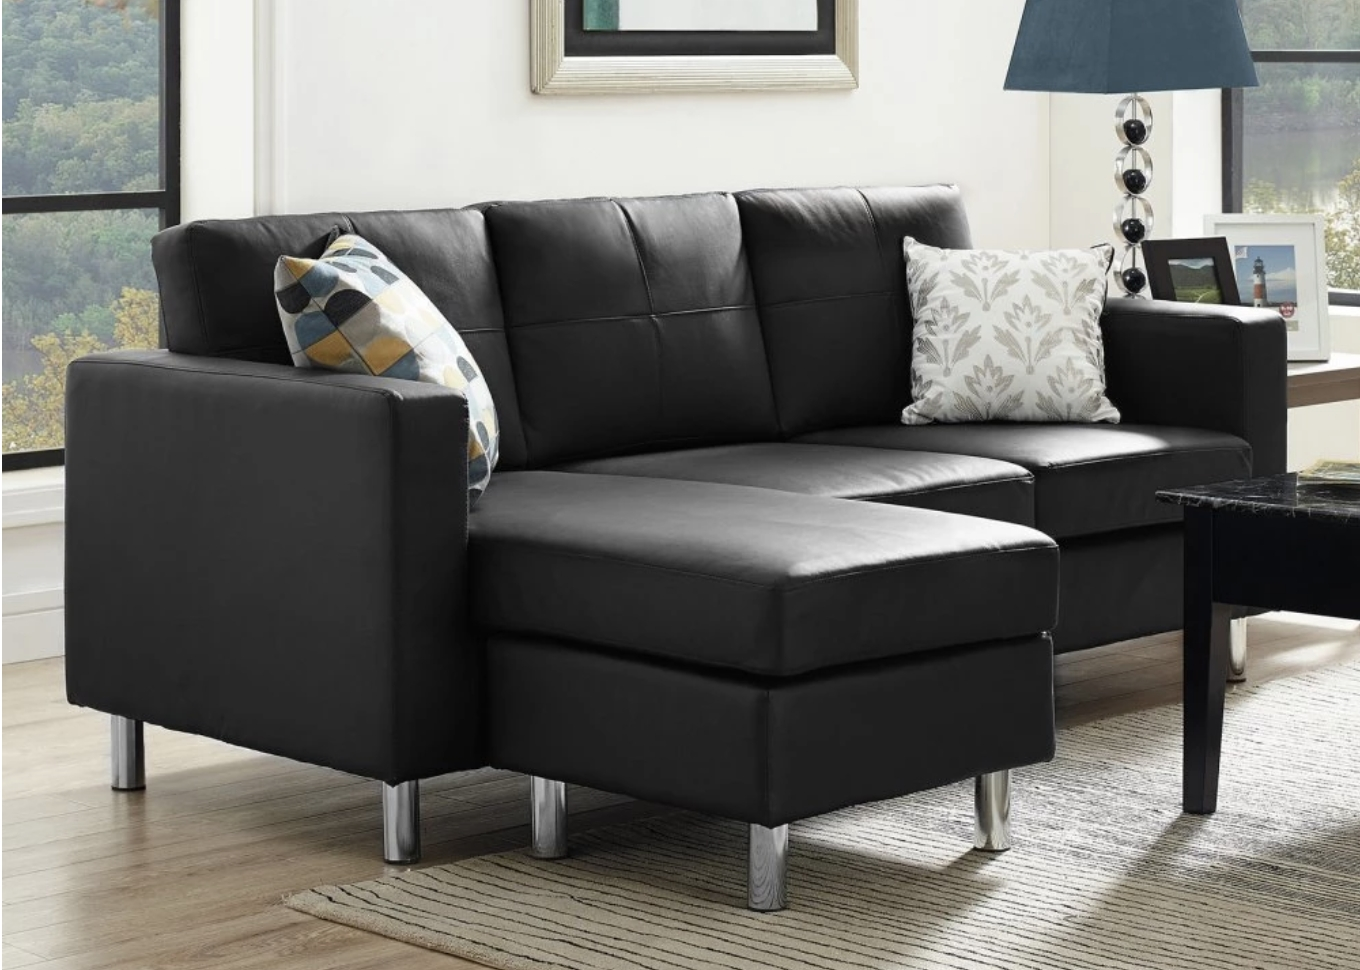 75 Modern Sectional Sofas For Small Spaces (2018) Within Sectional Sofas For Small Areas (View 2 of 10)